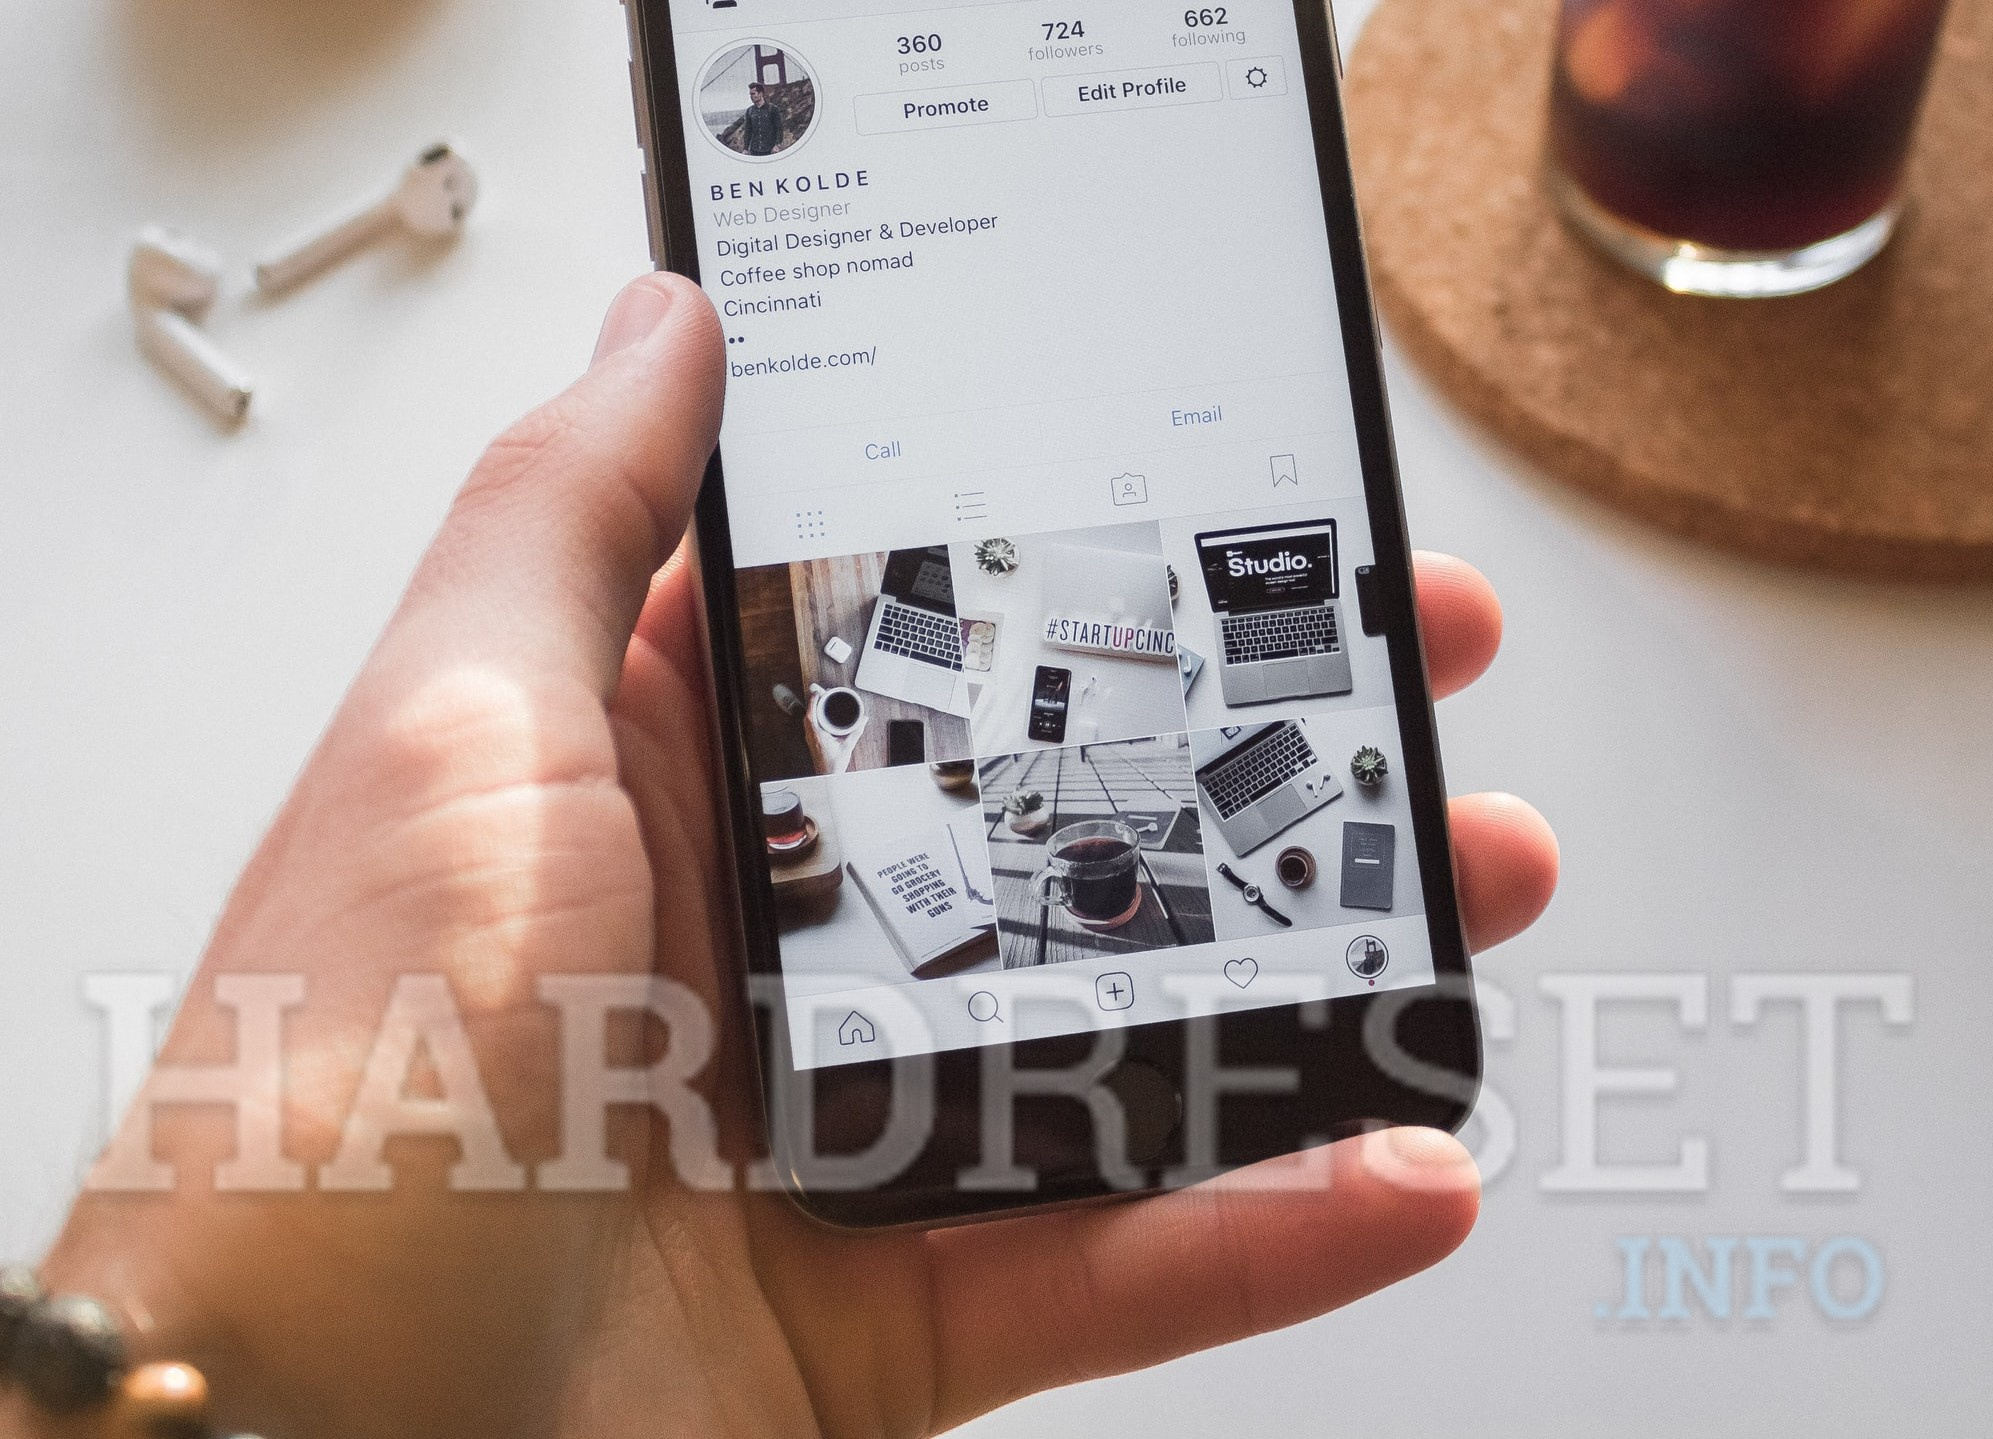 How to change Instagram username? - article image on hardreset.info